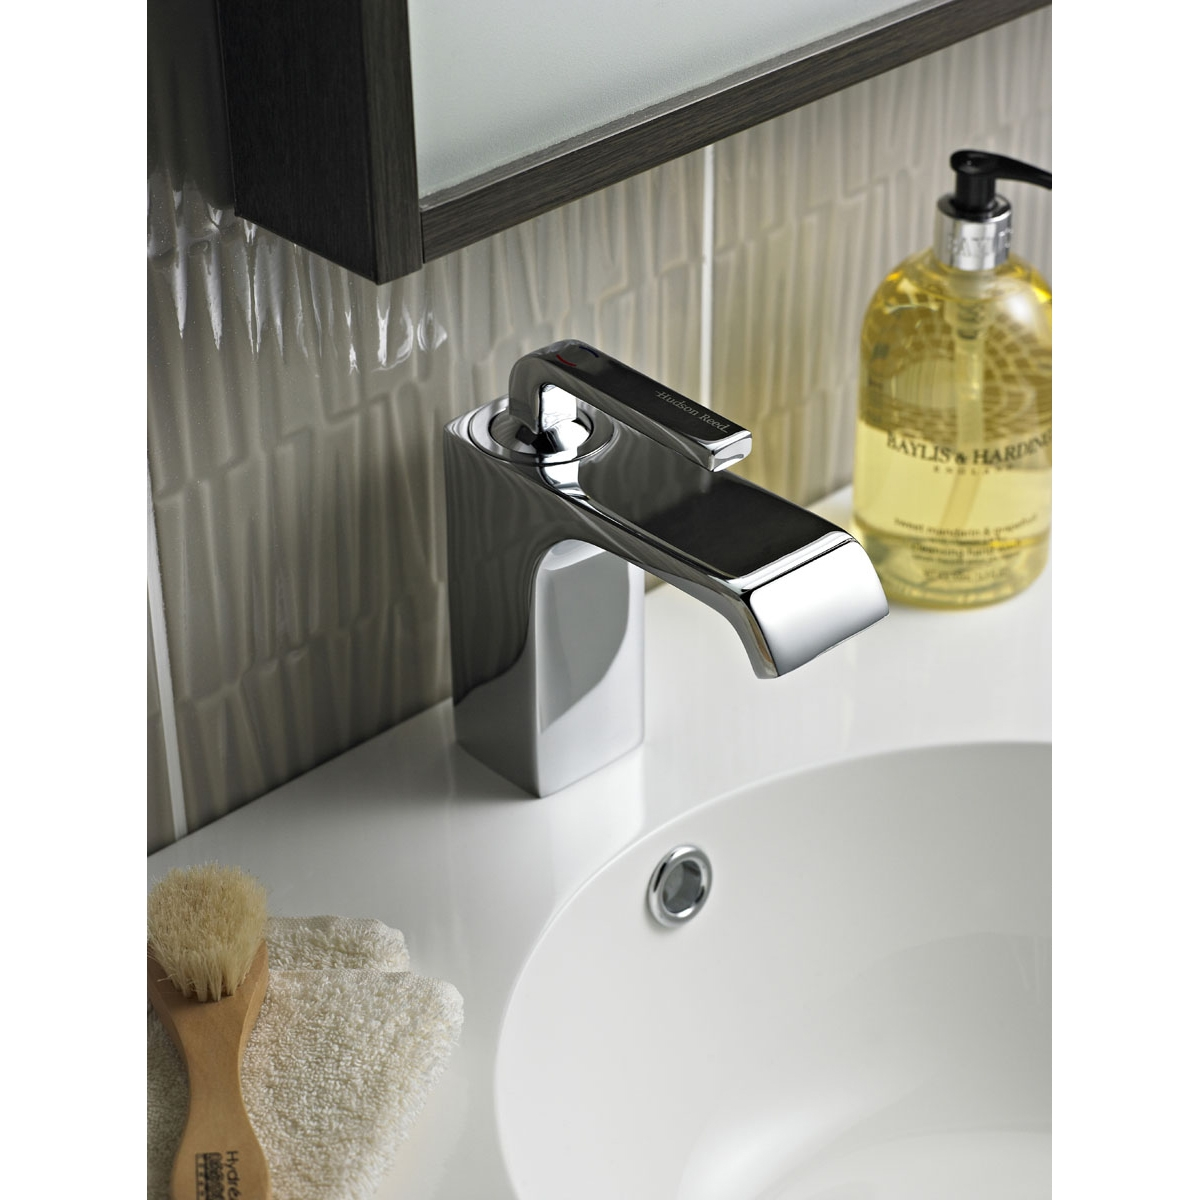 Hudson Reed Carma Mono Basin Mixer Tap Single Handle with Push Button Waste - Chrome